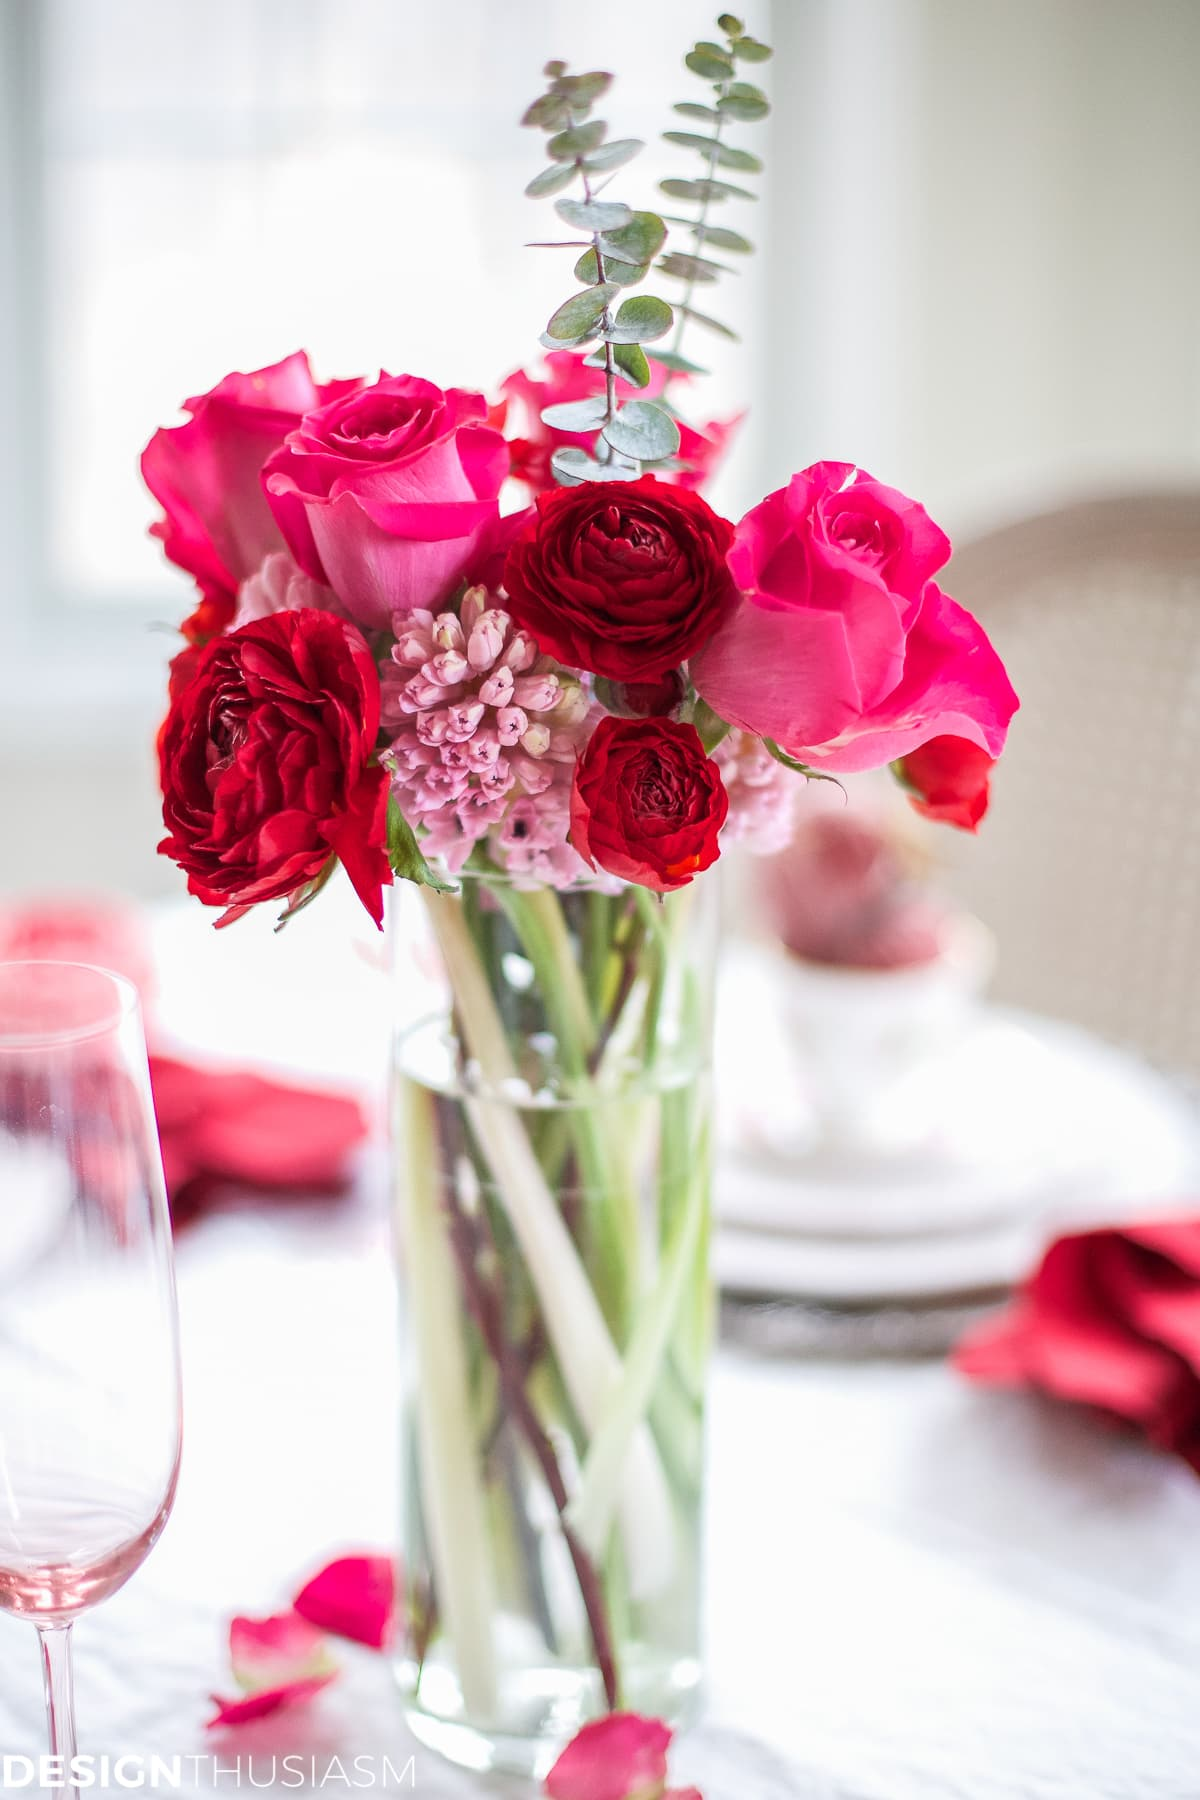 Valentine's Day Decorations: Velvet Hearts Tablescape | Designthusiasm.com